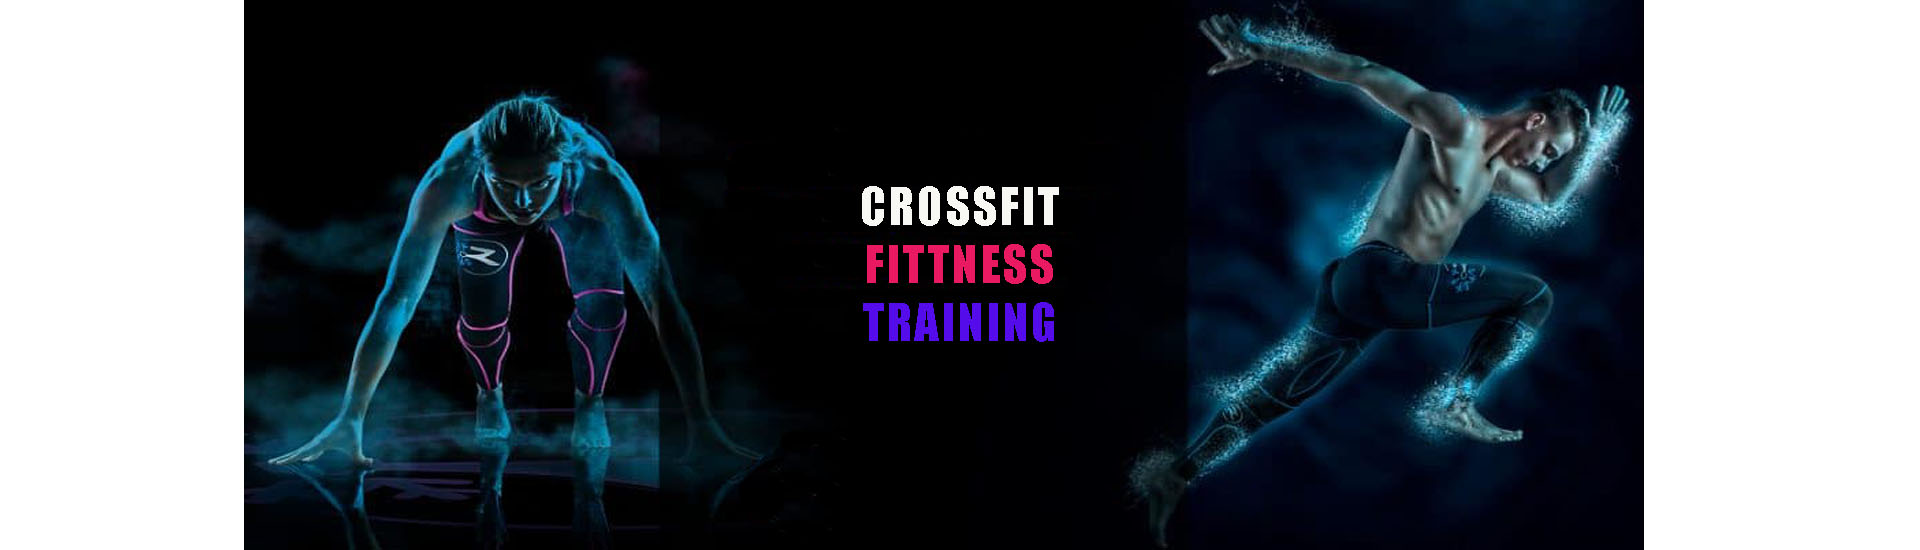 Deportes-Training-Crossfit